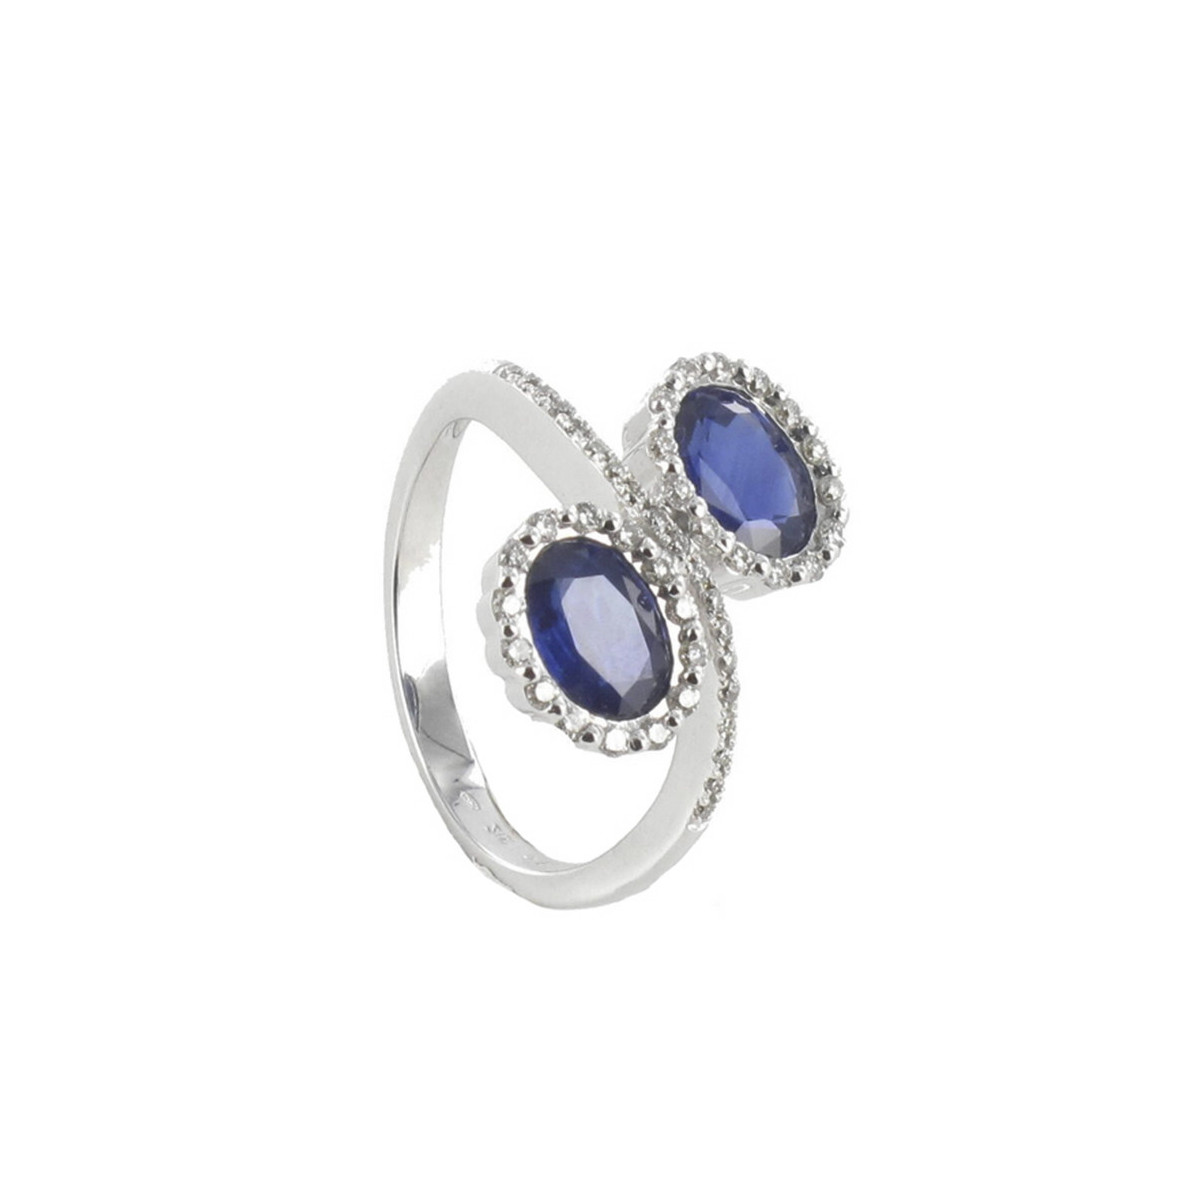 GOLD RING 2 OVAL SAPPHIRES AND DIAMONDS